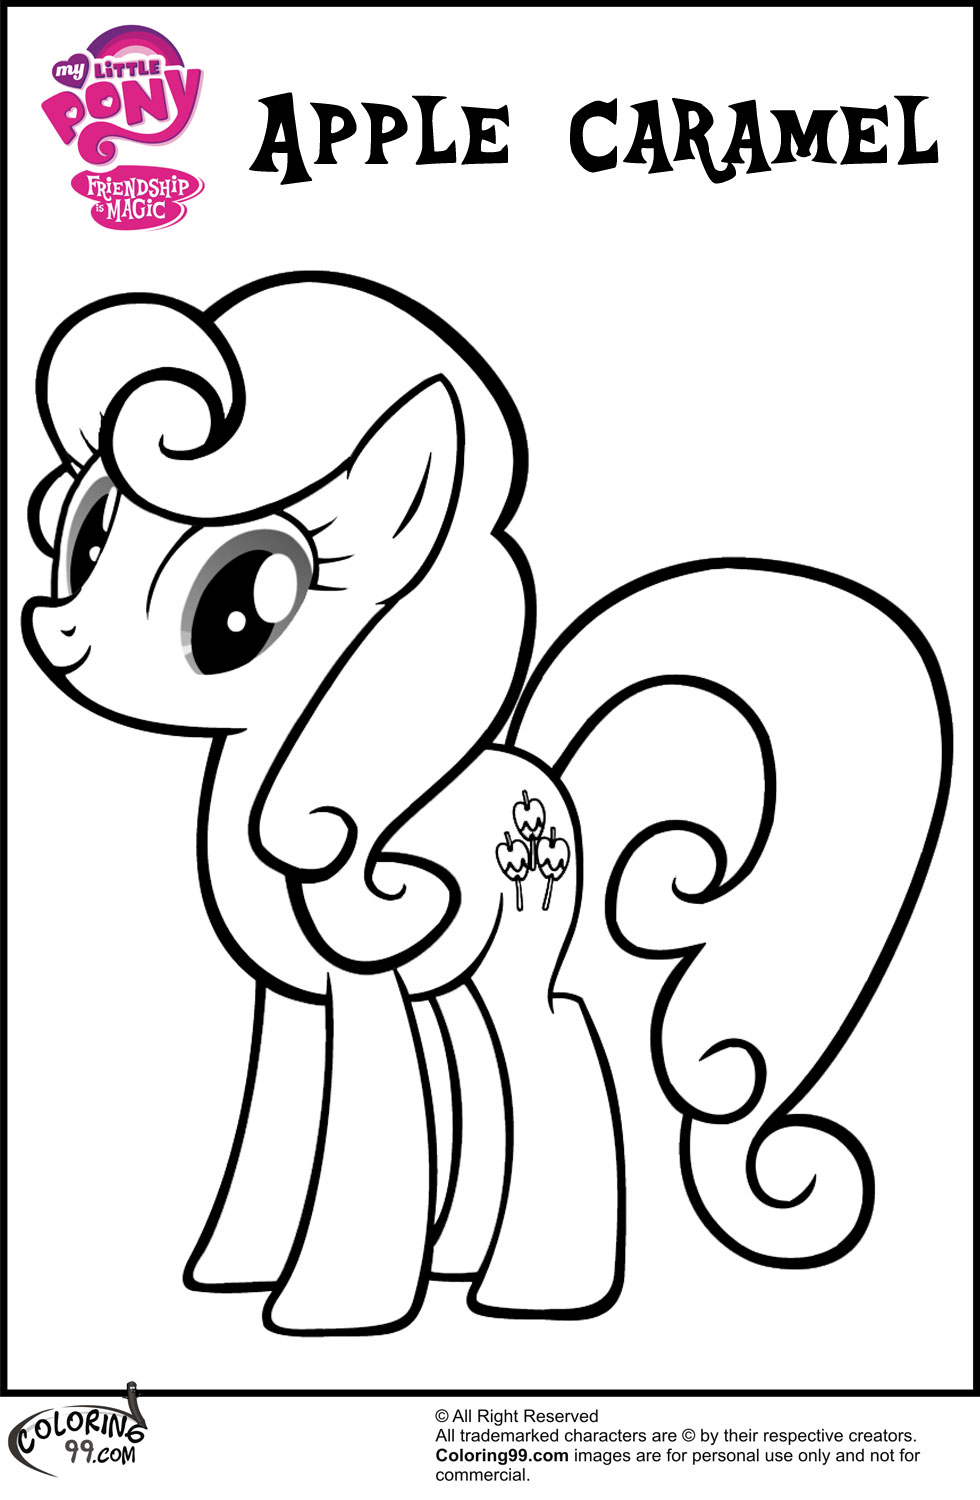 My Little Pony Names Coloring Pages : Mlp apple family coloring pages minister